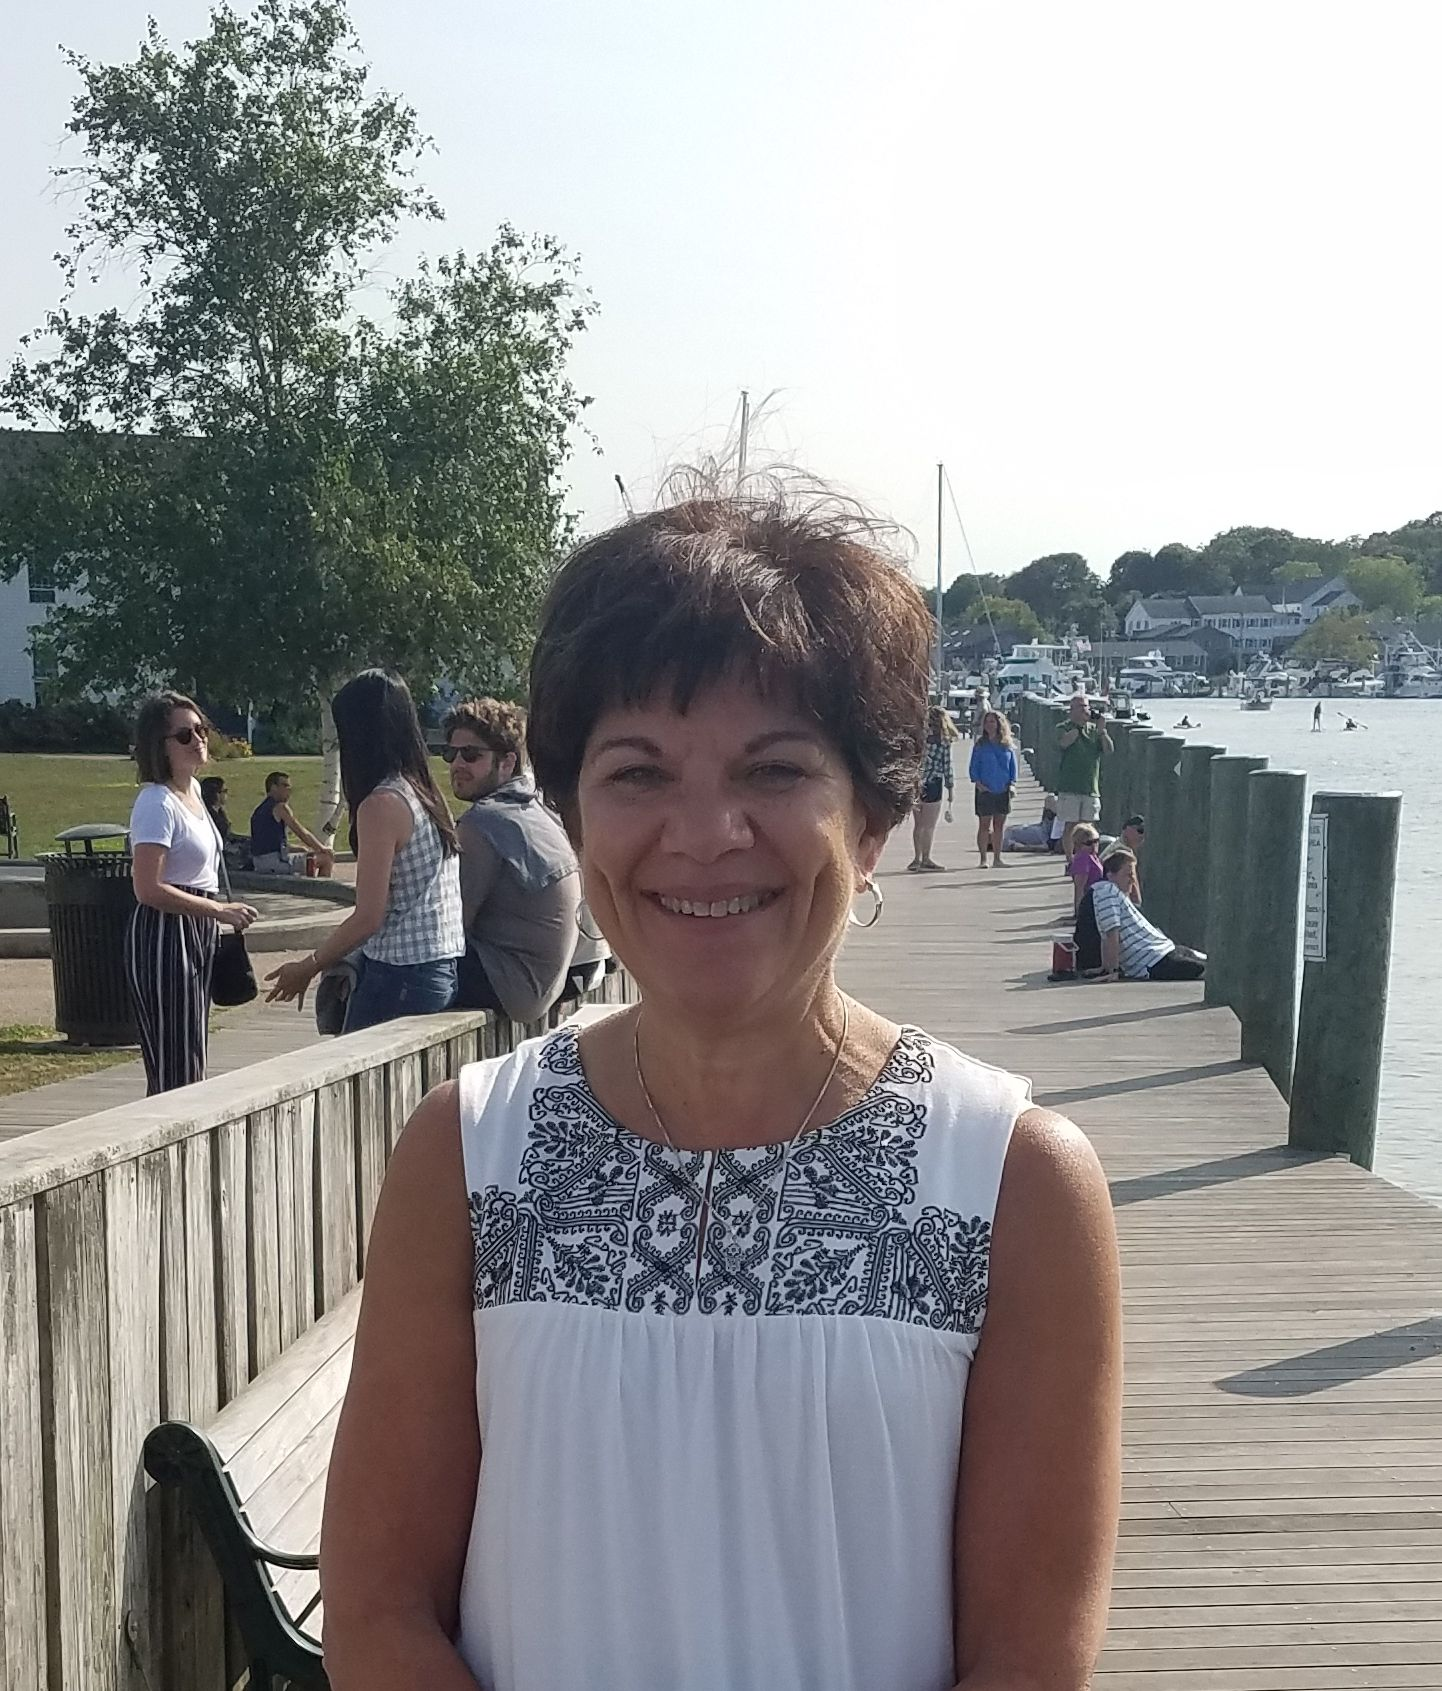 new hartford singles over 50 Milford dating coach ronnie ann ryan says there is no better way to meet men than online, especially for people over 50 teresa m pelham it seems the older men get, the less social they are.